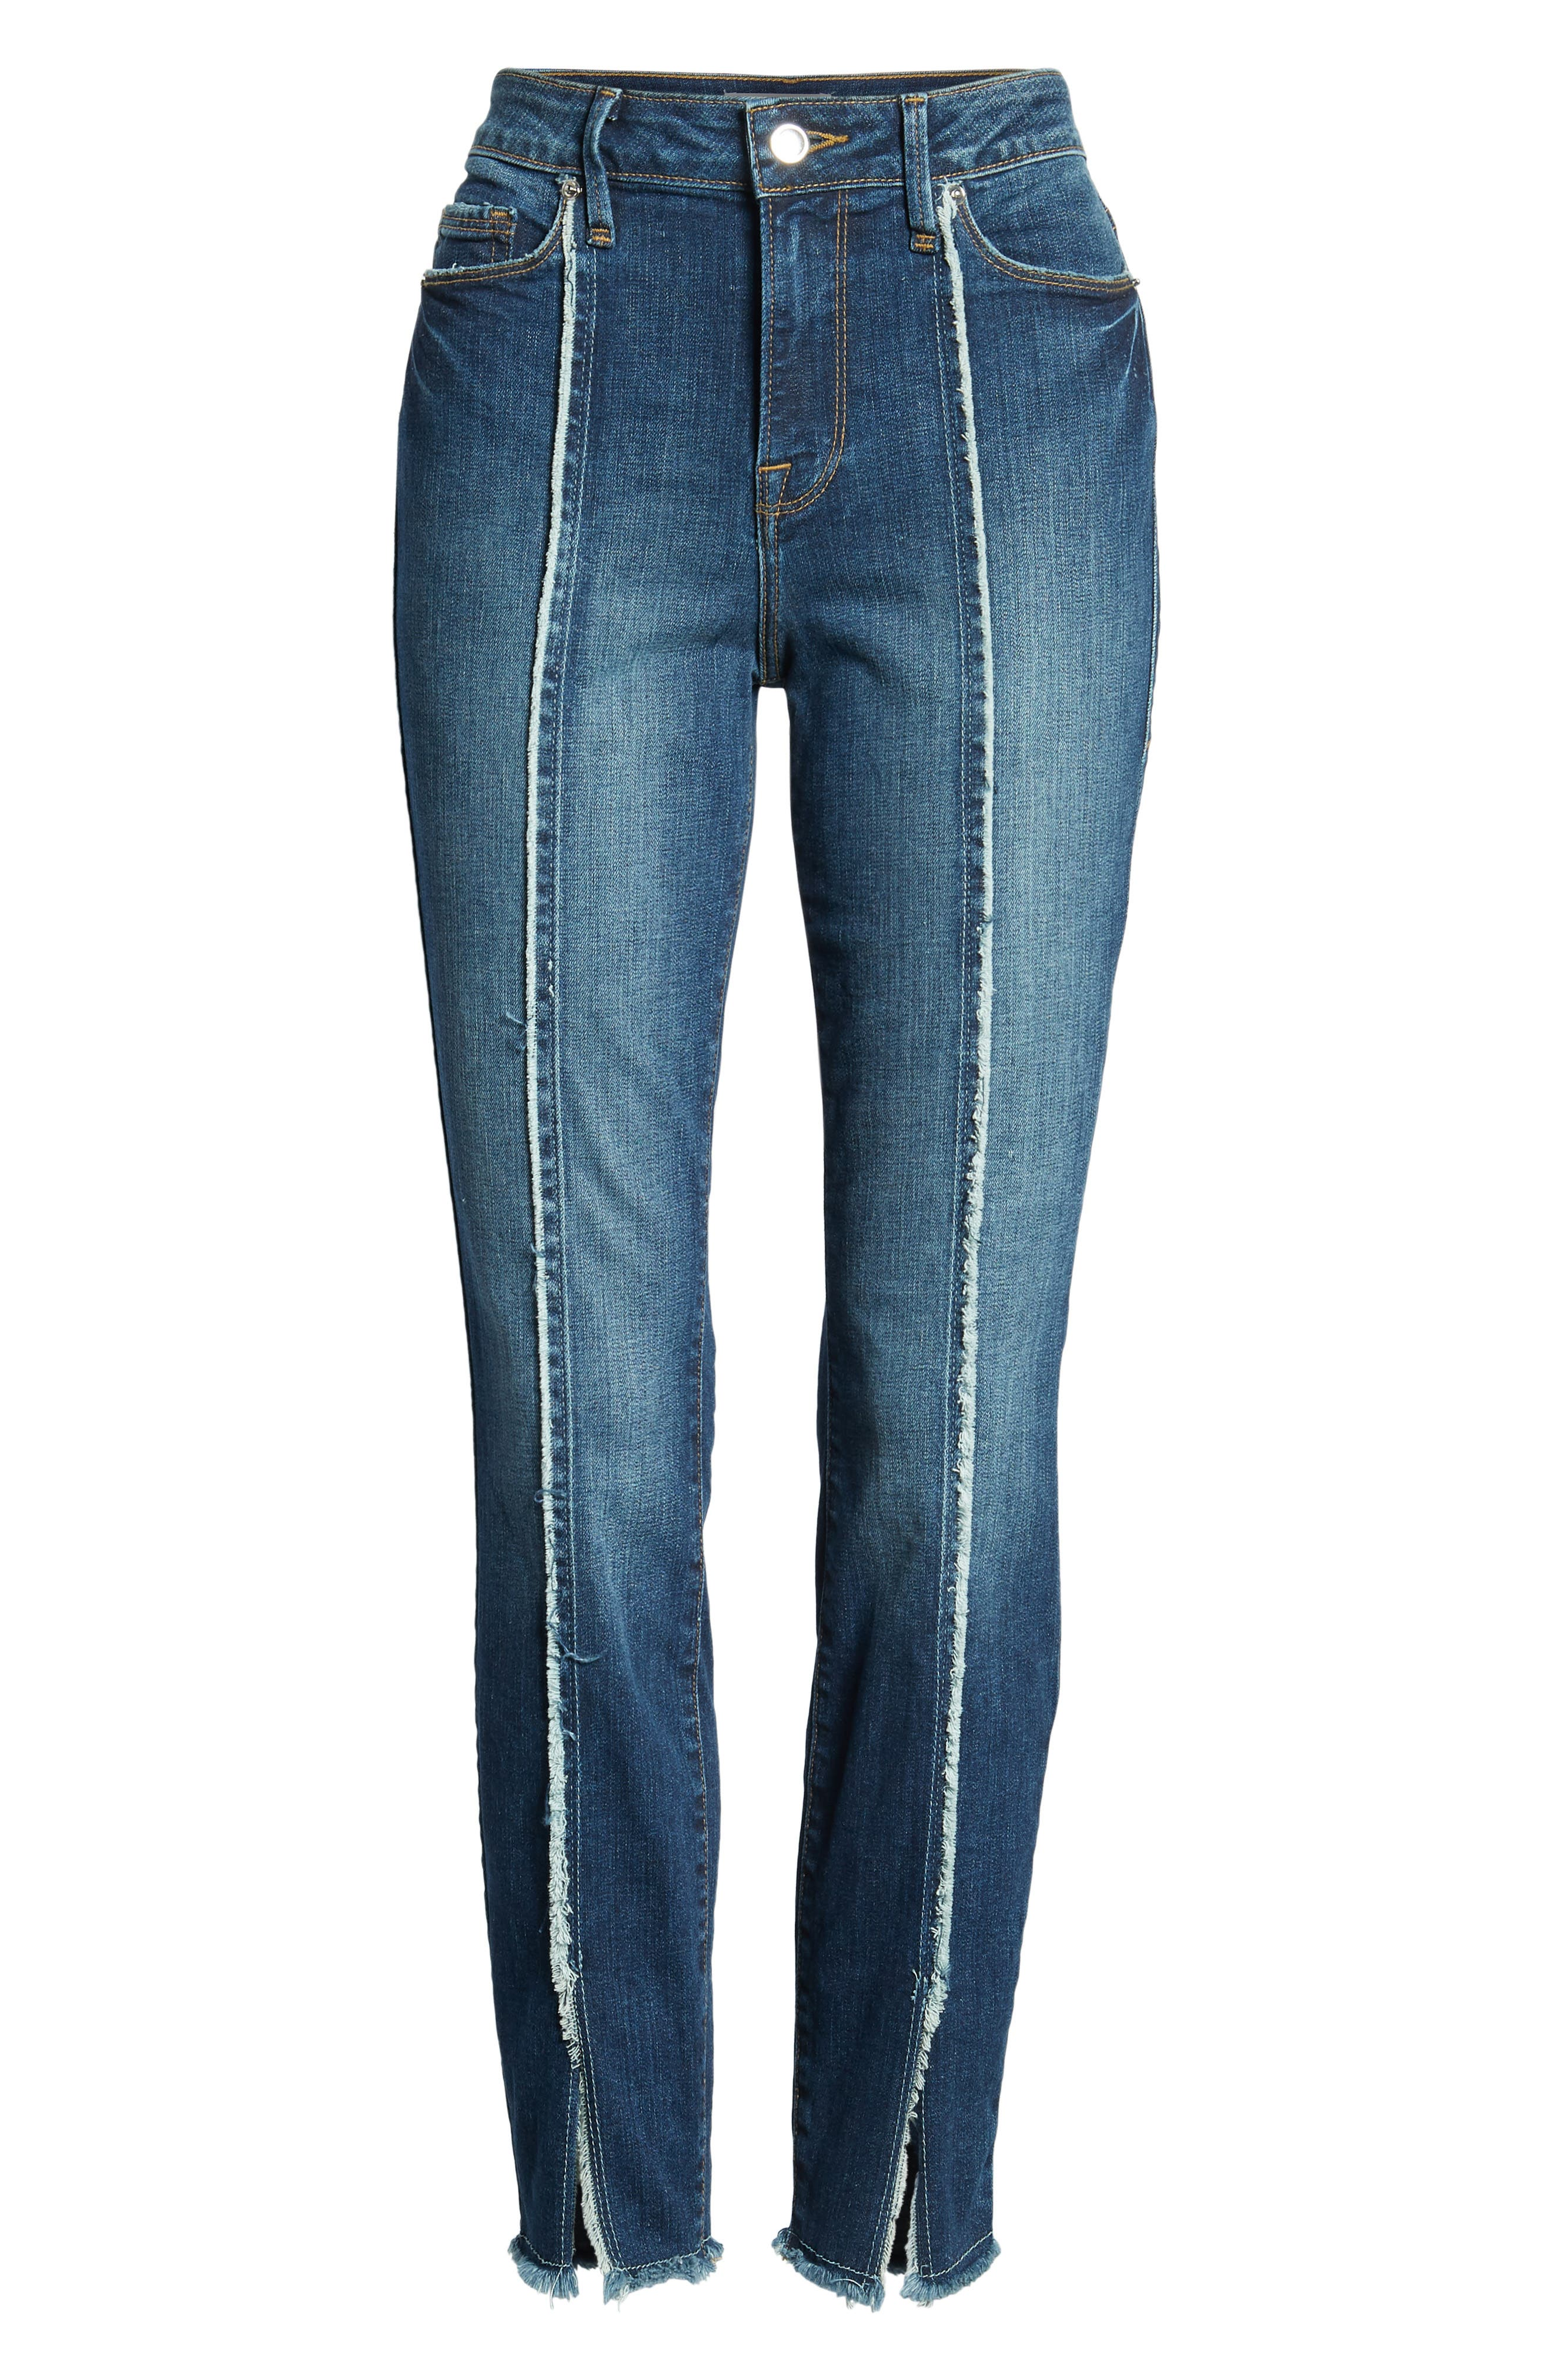 Good Jeans Raw Seam Crop Skinny Jeans,                             Alternate thumbnail 7, color,                             Blue135